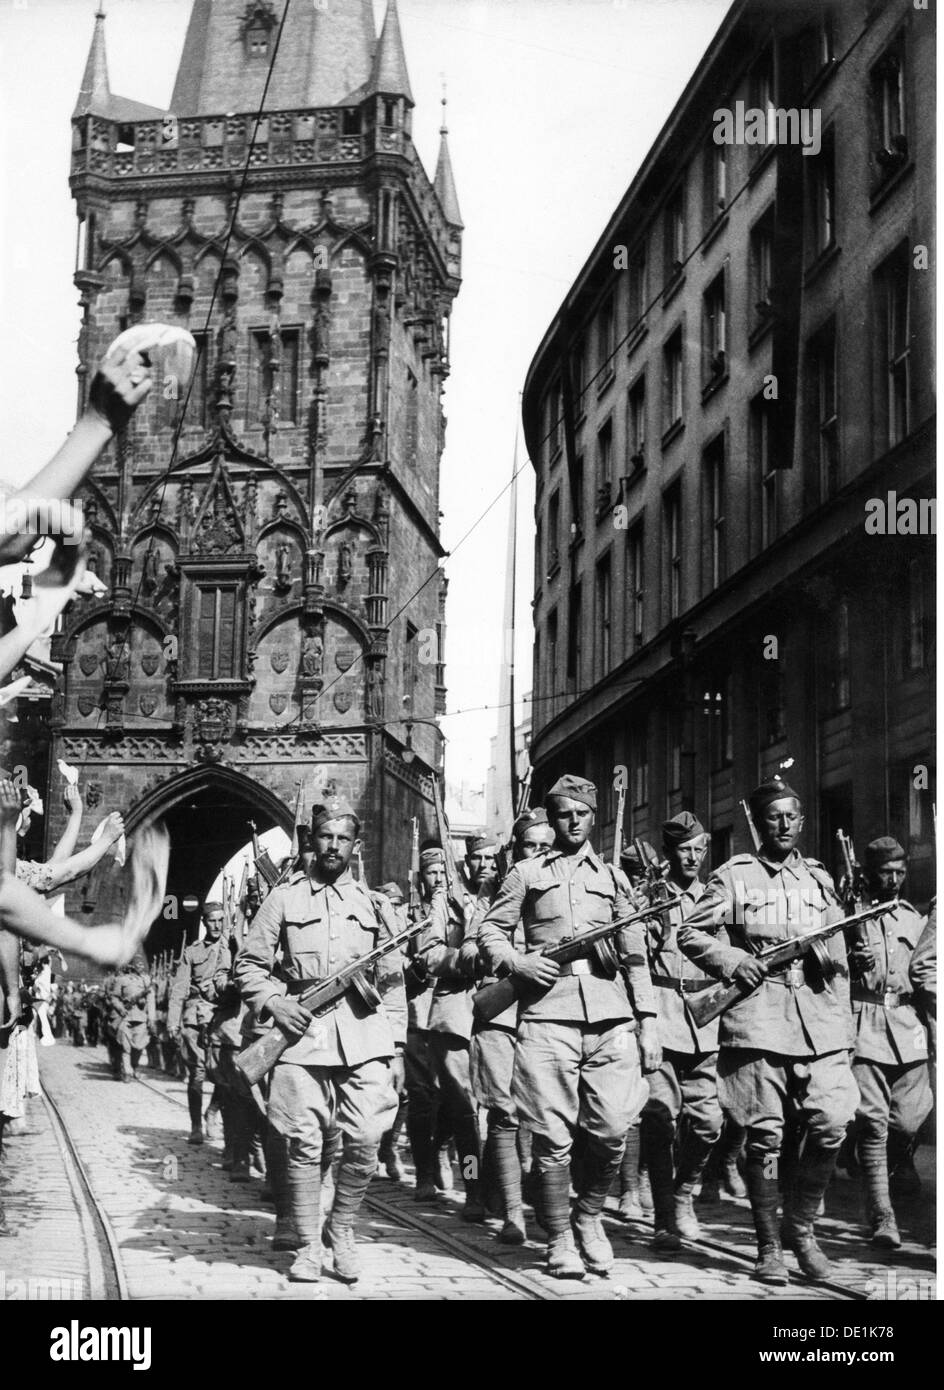 Second World War / WWII, Czechoslovakia, Prague Uprising, May 1945, victory parade, soldiers of the Czechoslovakian exile army, Charles Bridge, 17.5.1945, 20th century, 1940s, 40s, Czechia, Czech Republic, resistance, Red Army, military, soldiers, soldier, half length, march, marching, uniform, uniforms, weapon, weapons, arms, sub-machine gun, sub-machine guns, grease gun, PPSch-41, gaiter, puttee, gaiters, puttees, military parade, street, streets, victory, victories, liberation, liberations, liberator, liberators, military review, world war, world wars, upris, Additional-Rights-Clearences-NA - Stock Image